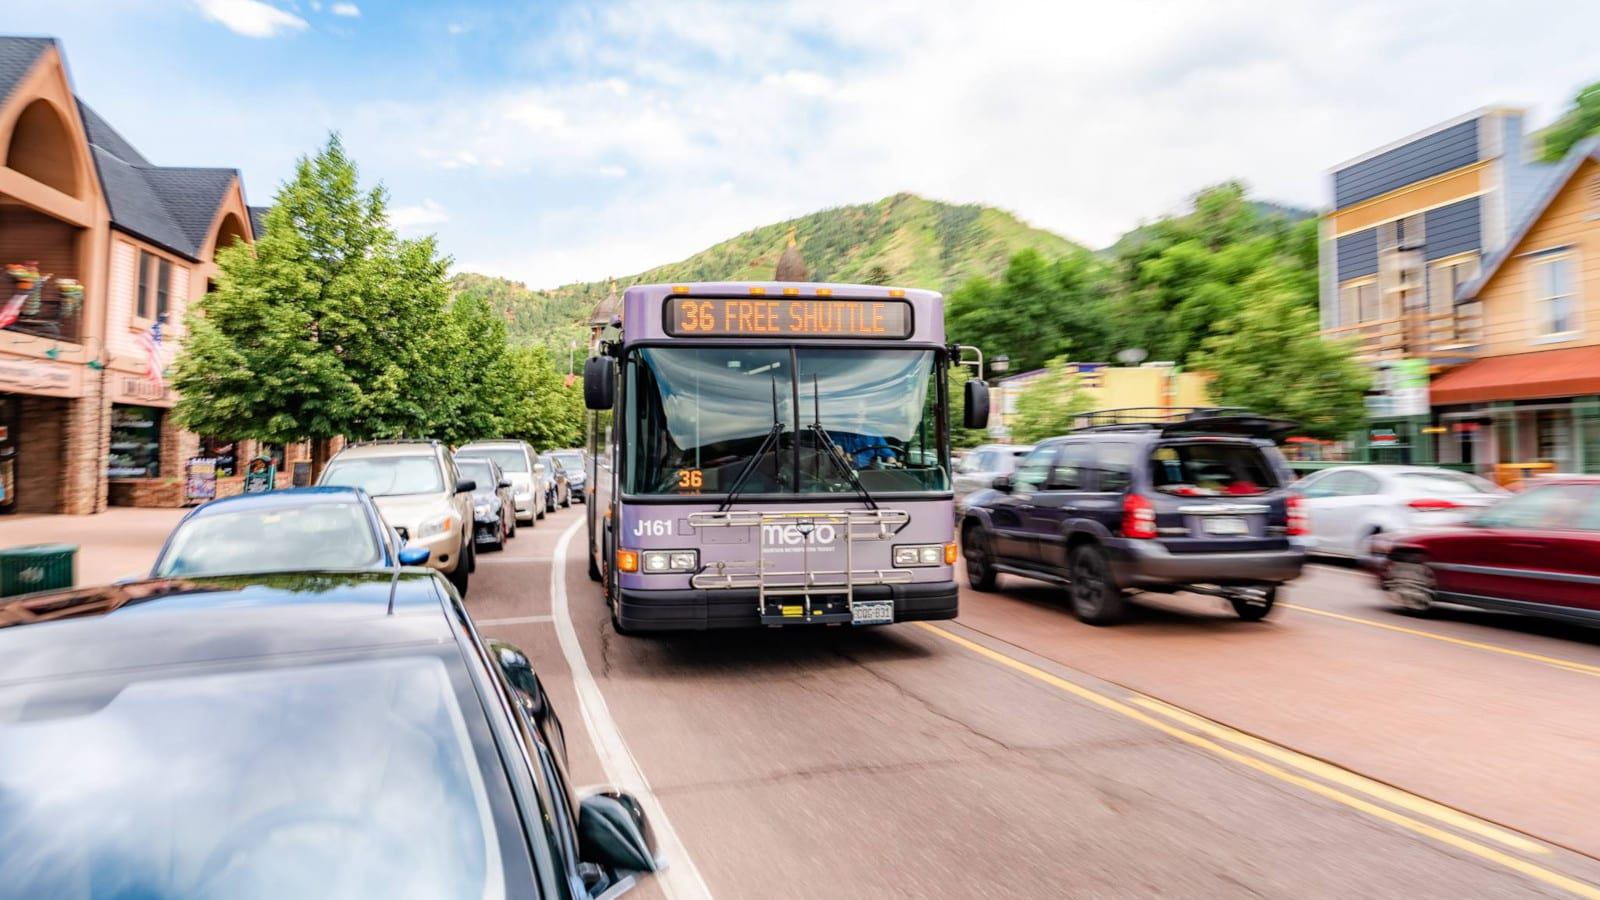 Mountain Metropolitan Transit Colorado Springs Free Shuttle Bus